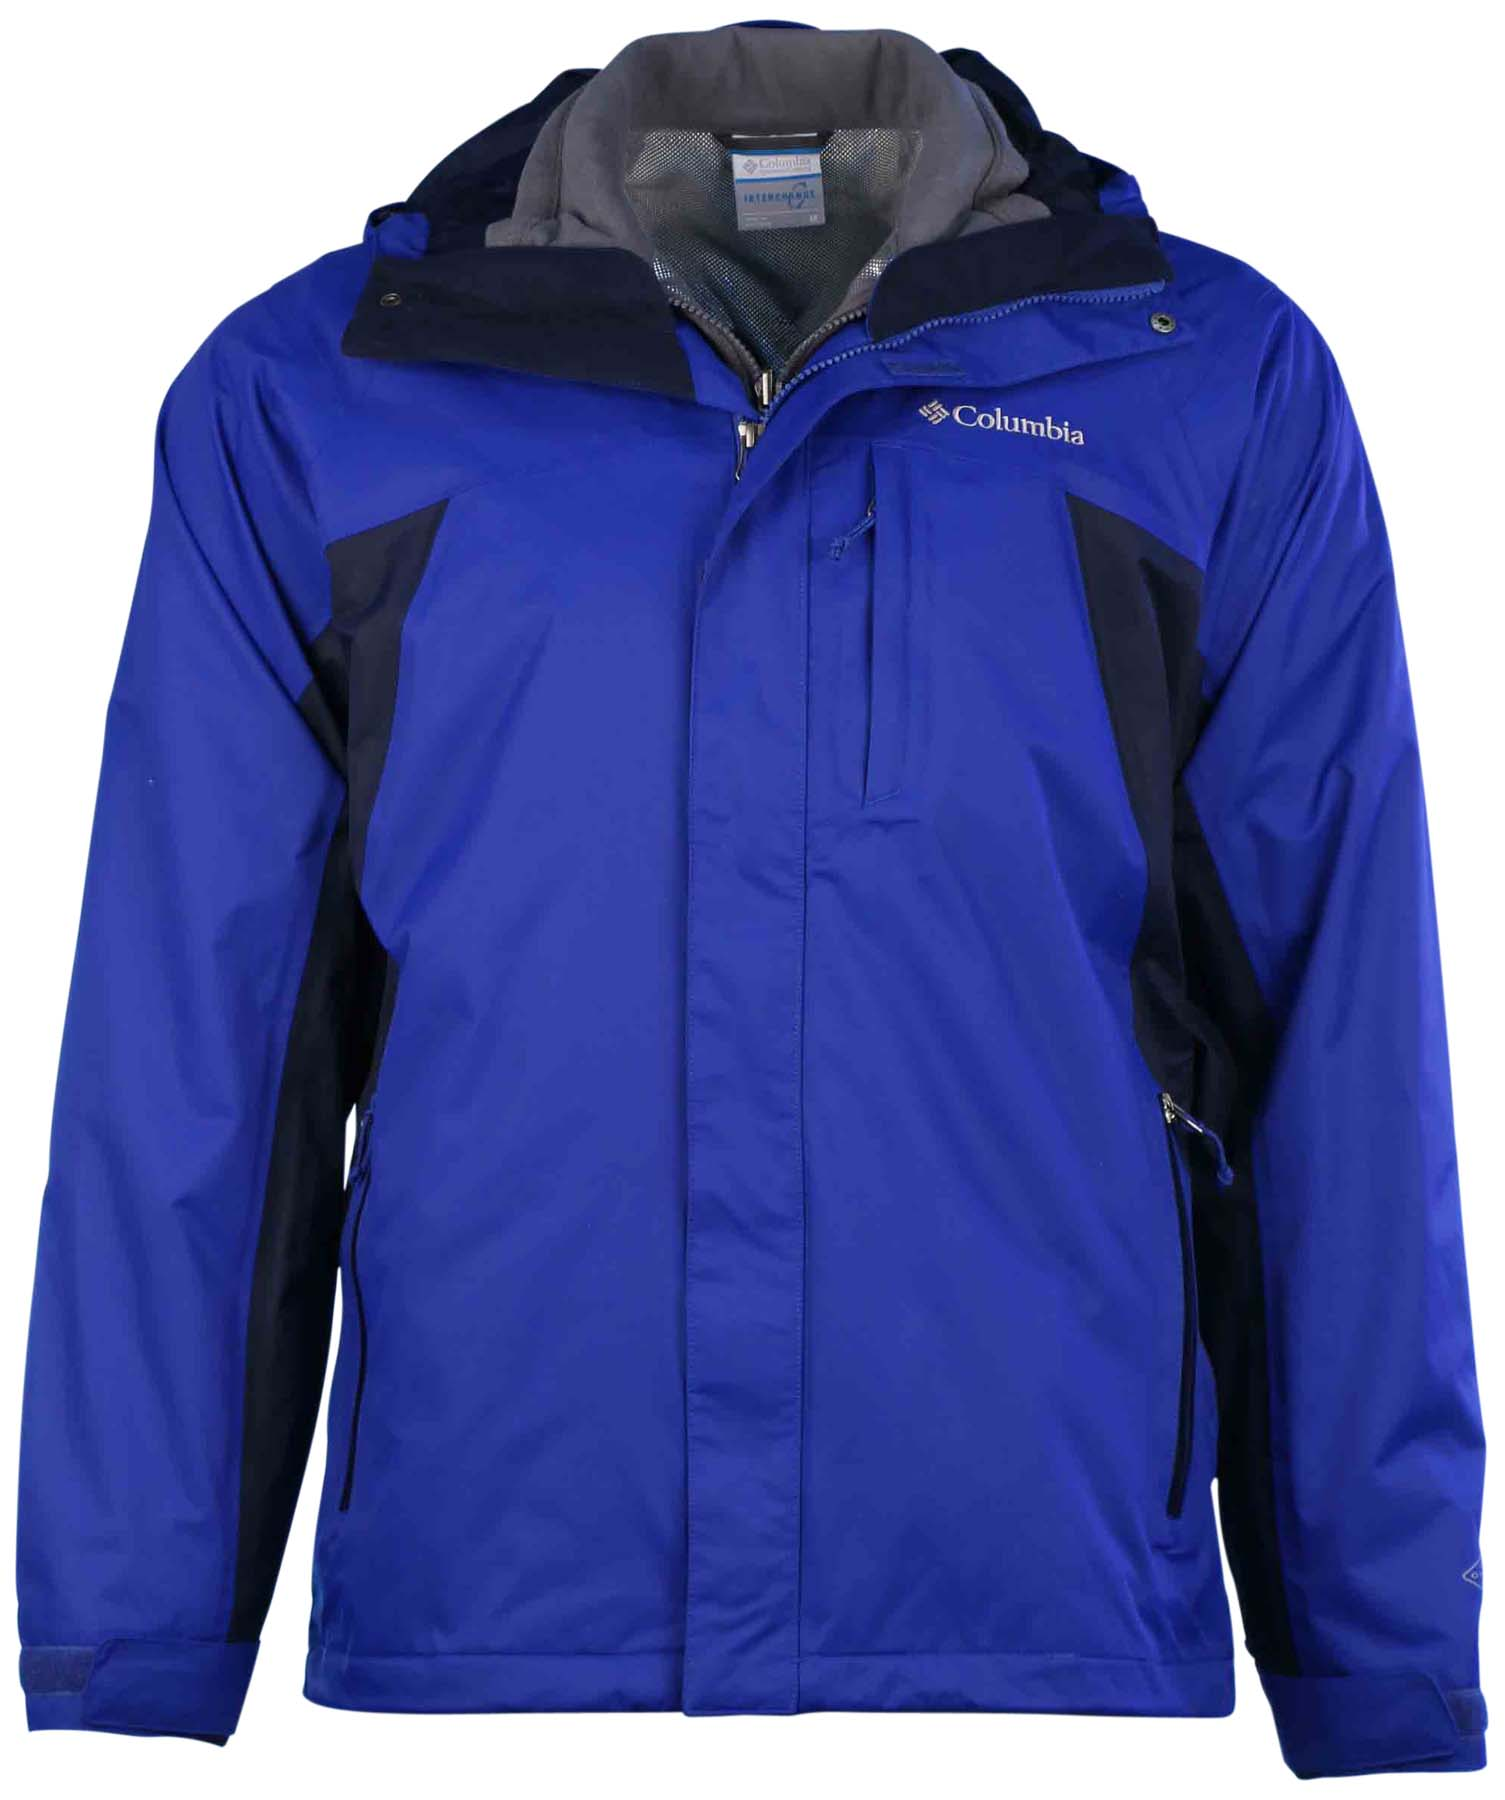 Columbia Men's Winter Park Pass Interchange Jacket | eBay